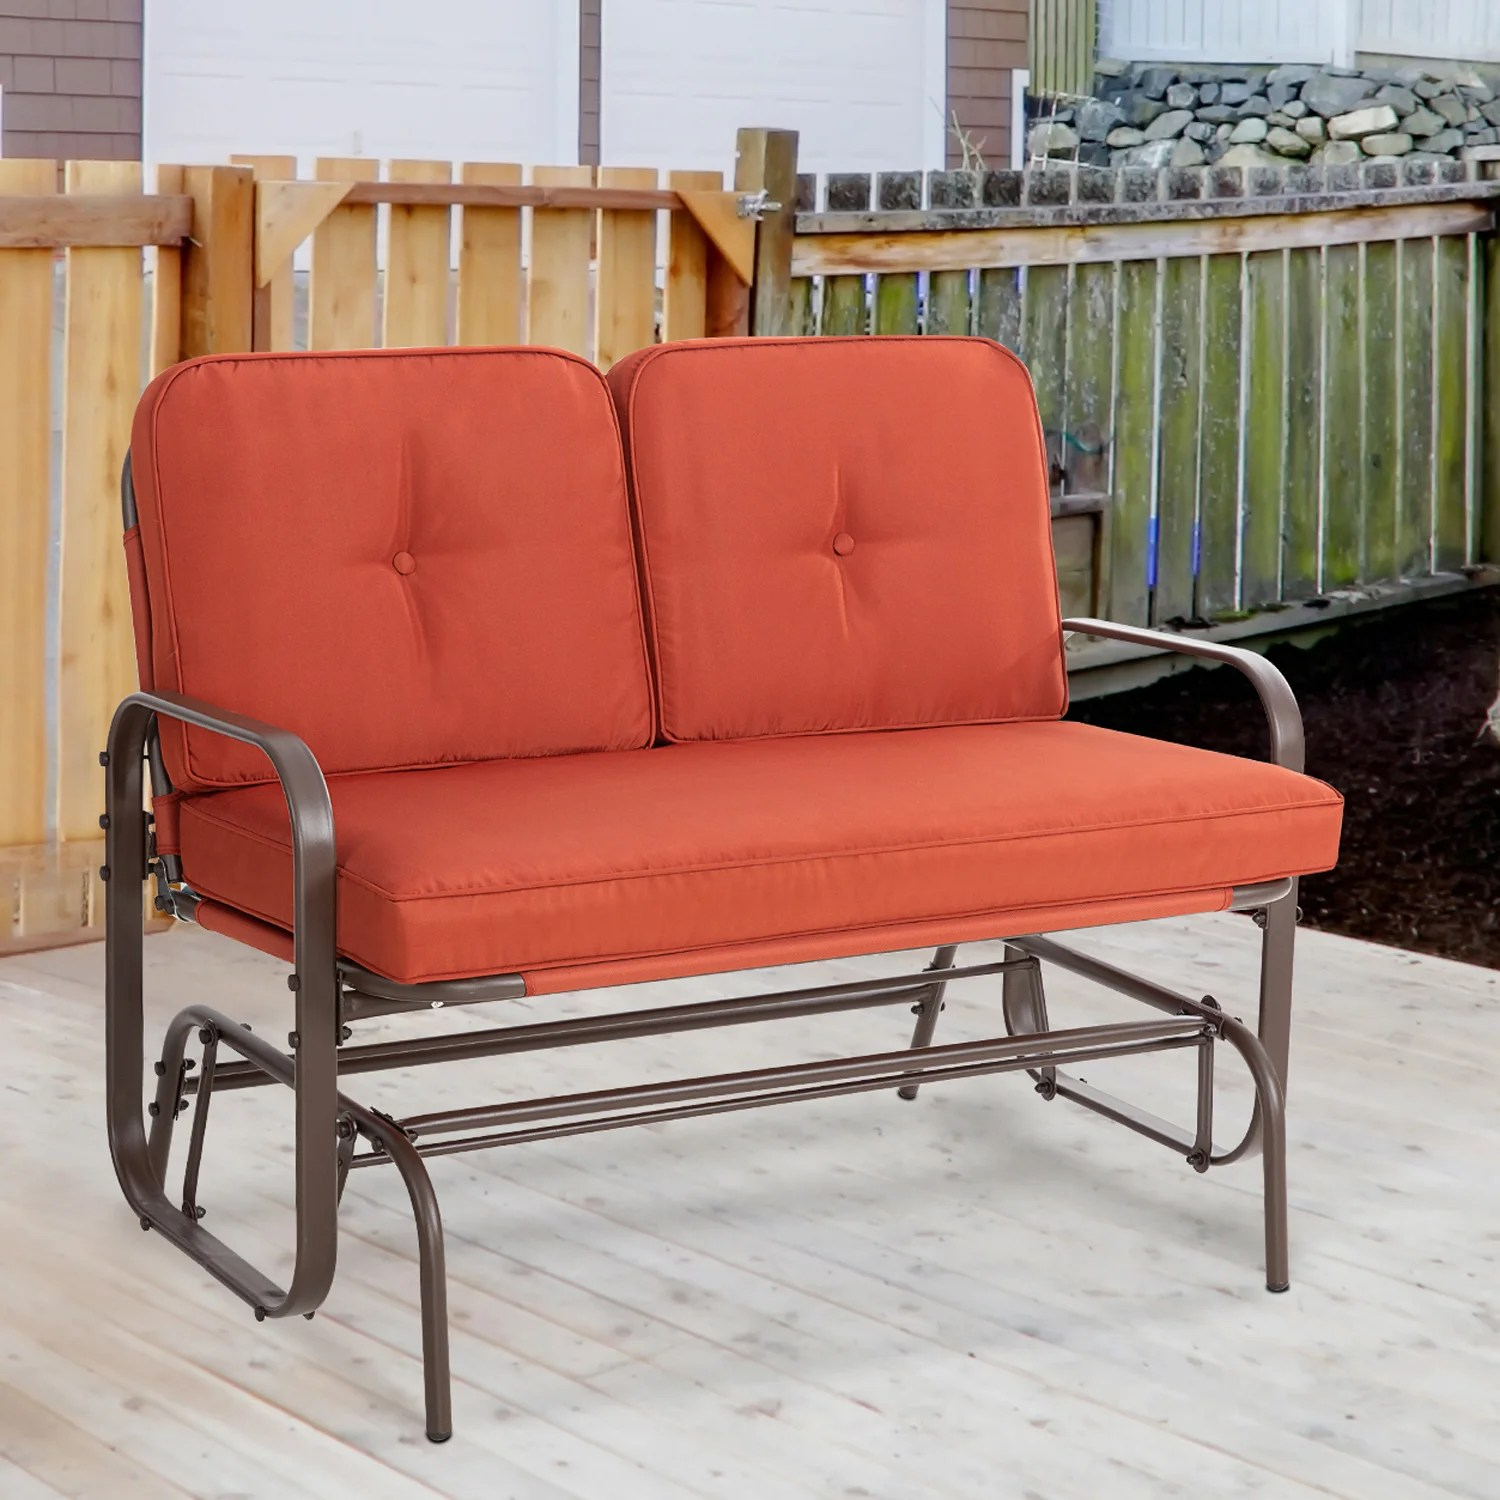 https www wayfair com outdoor pdp lark manor outdoor patio rocking glider swing loveseat patio bench chair for 2 persons patio wrought steel iron frame rocker chair set with cushion for garden backyard porch red w005197925 html